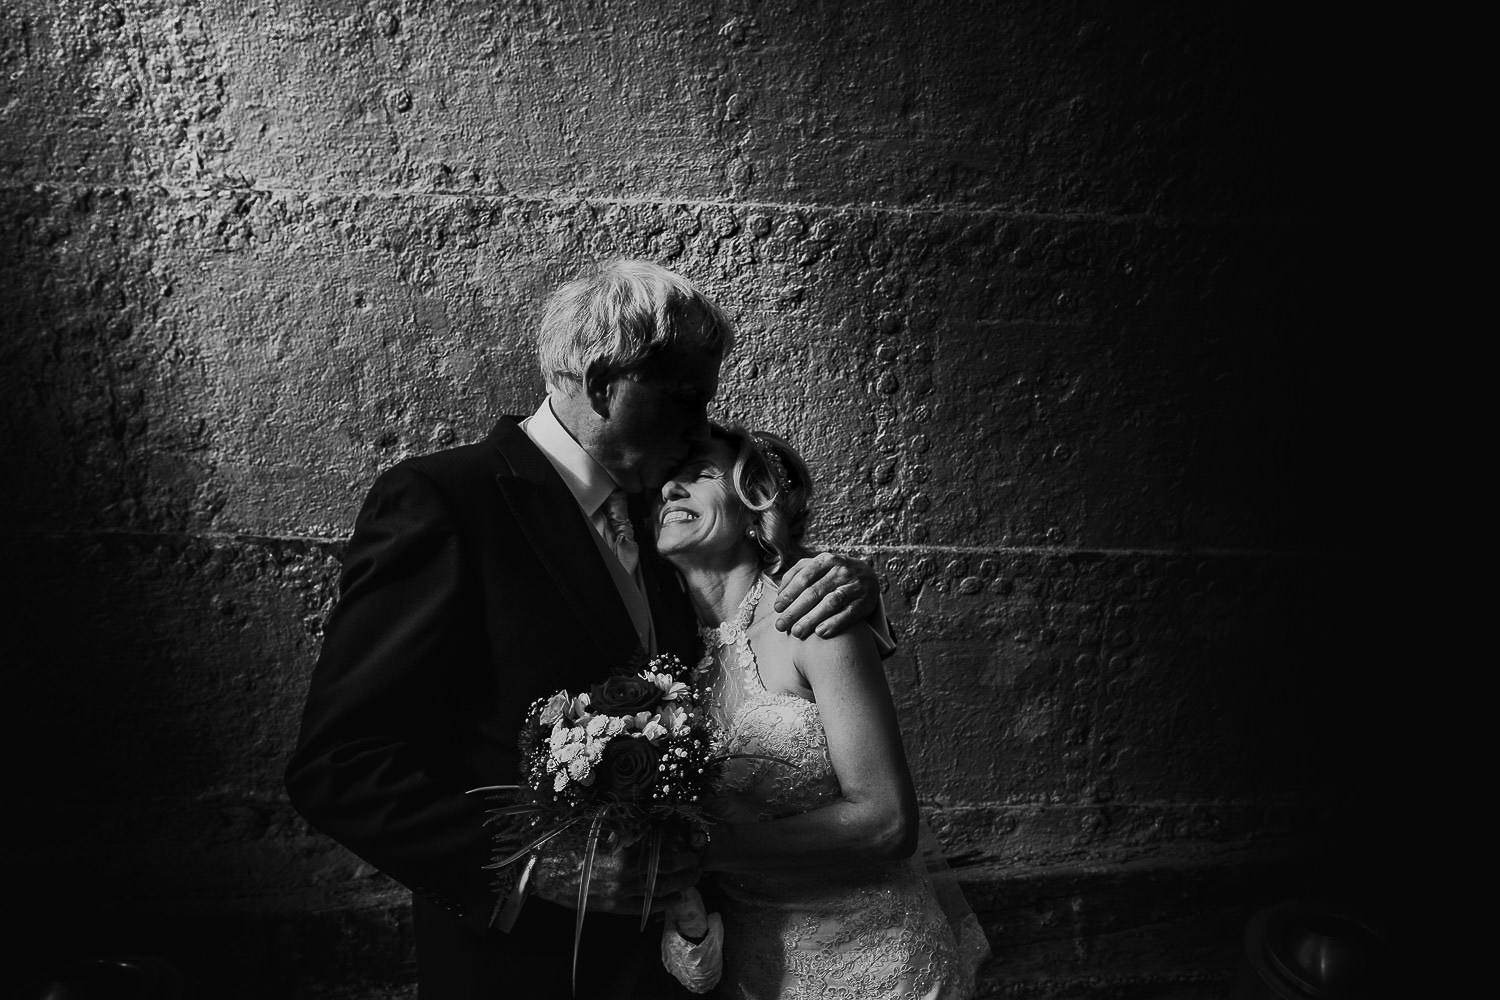 A portrait of the bride and groom